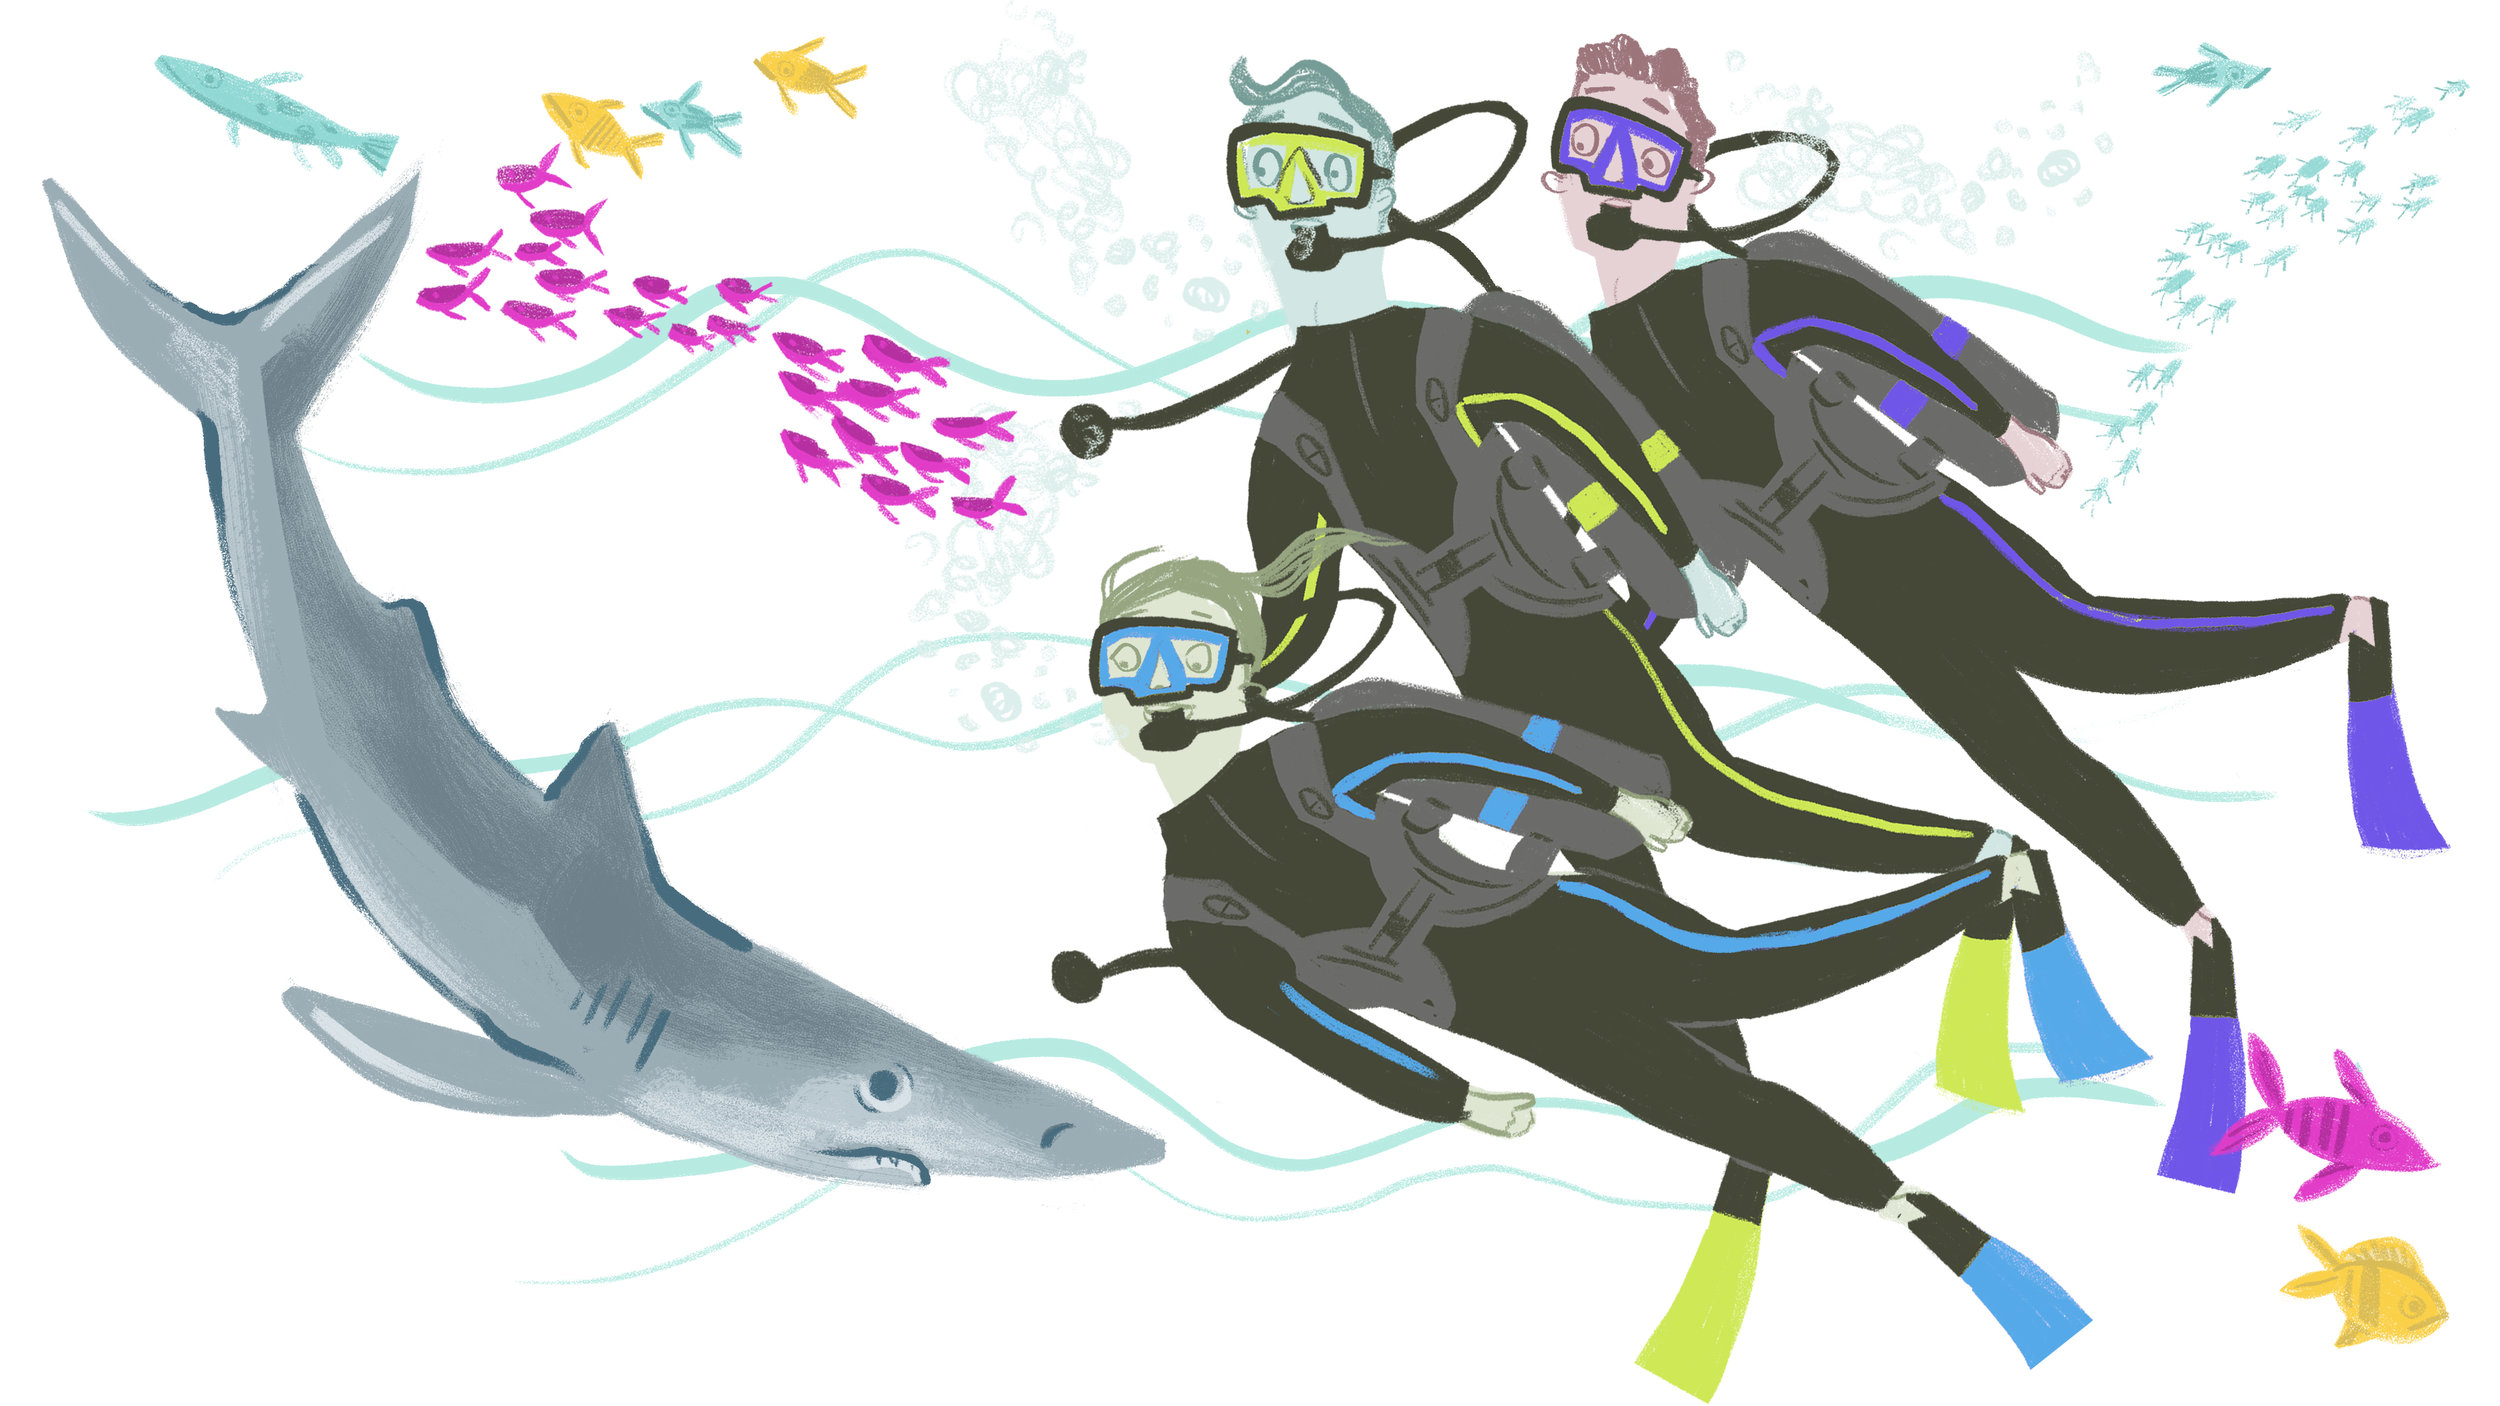 Scuba Dive Shark copy.jpg